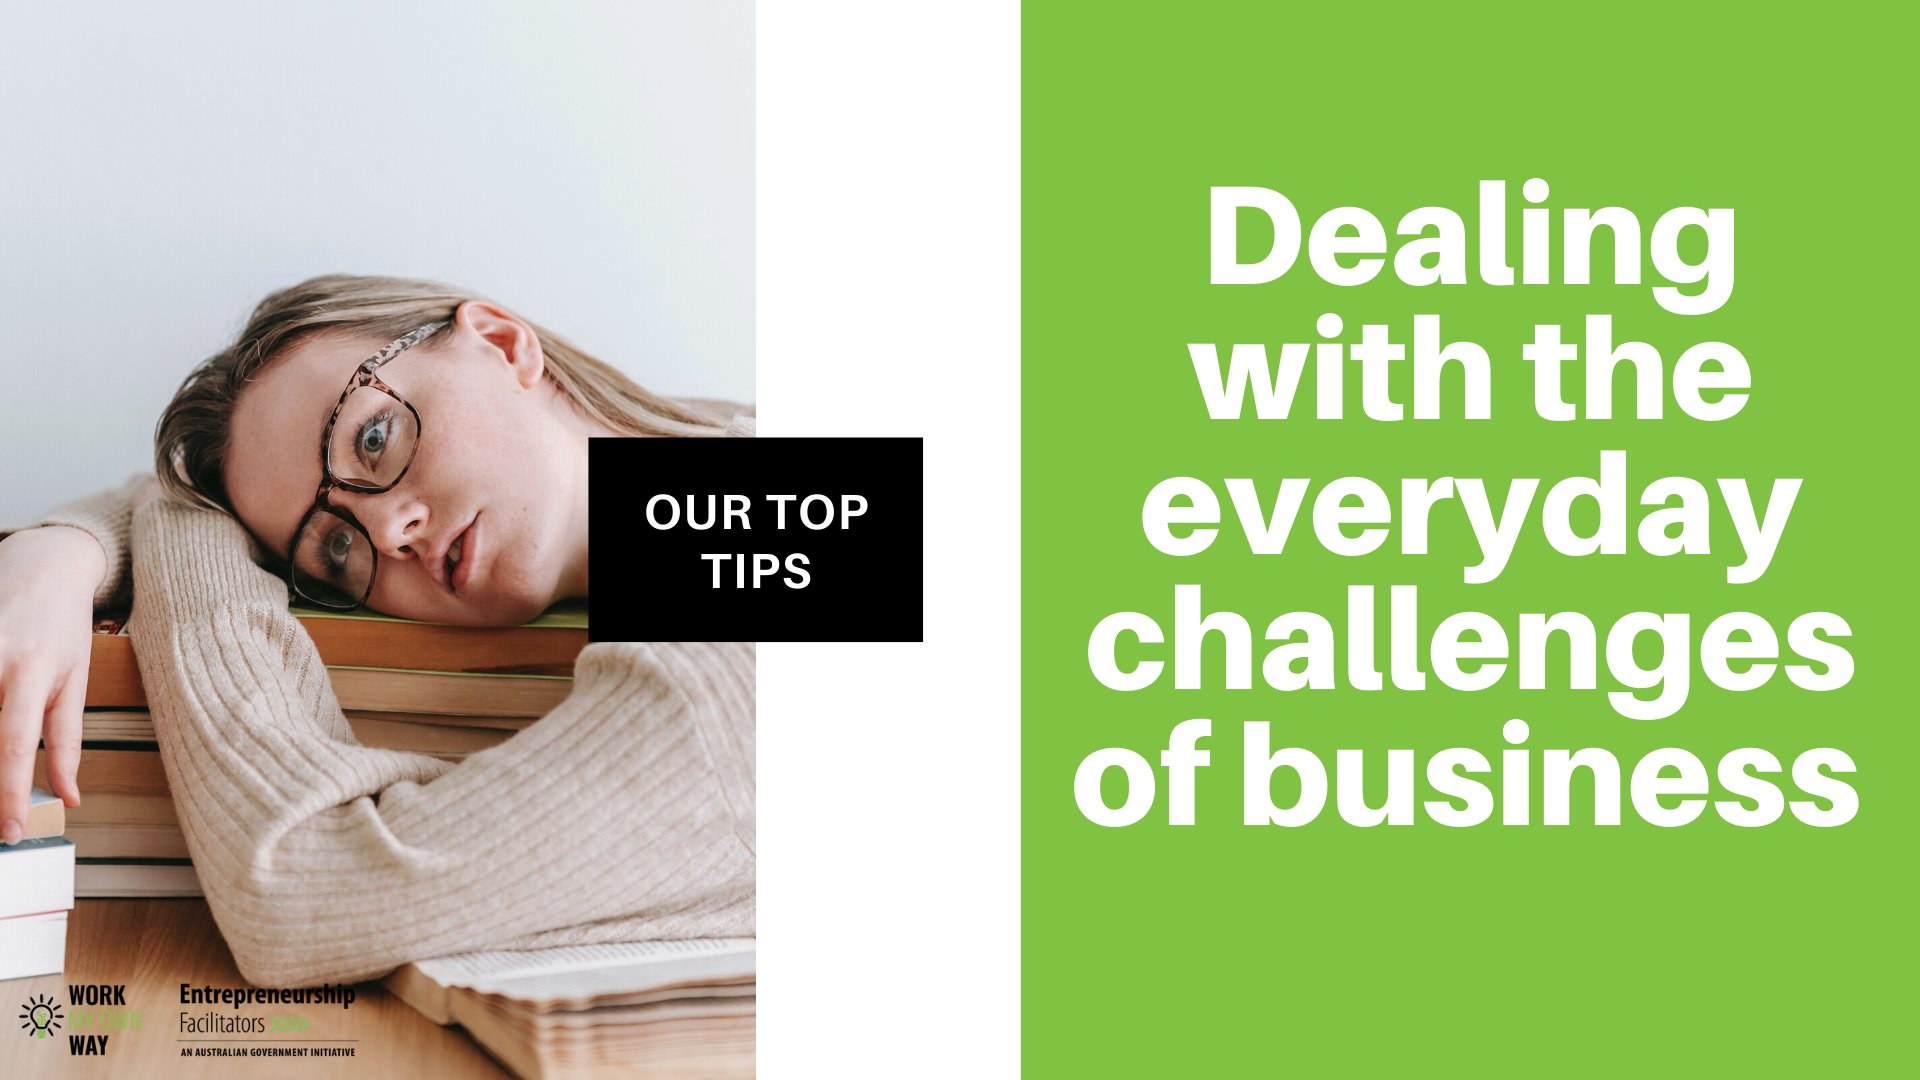 Dealing with business challenges - our top tips